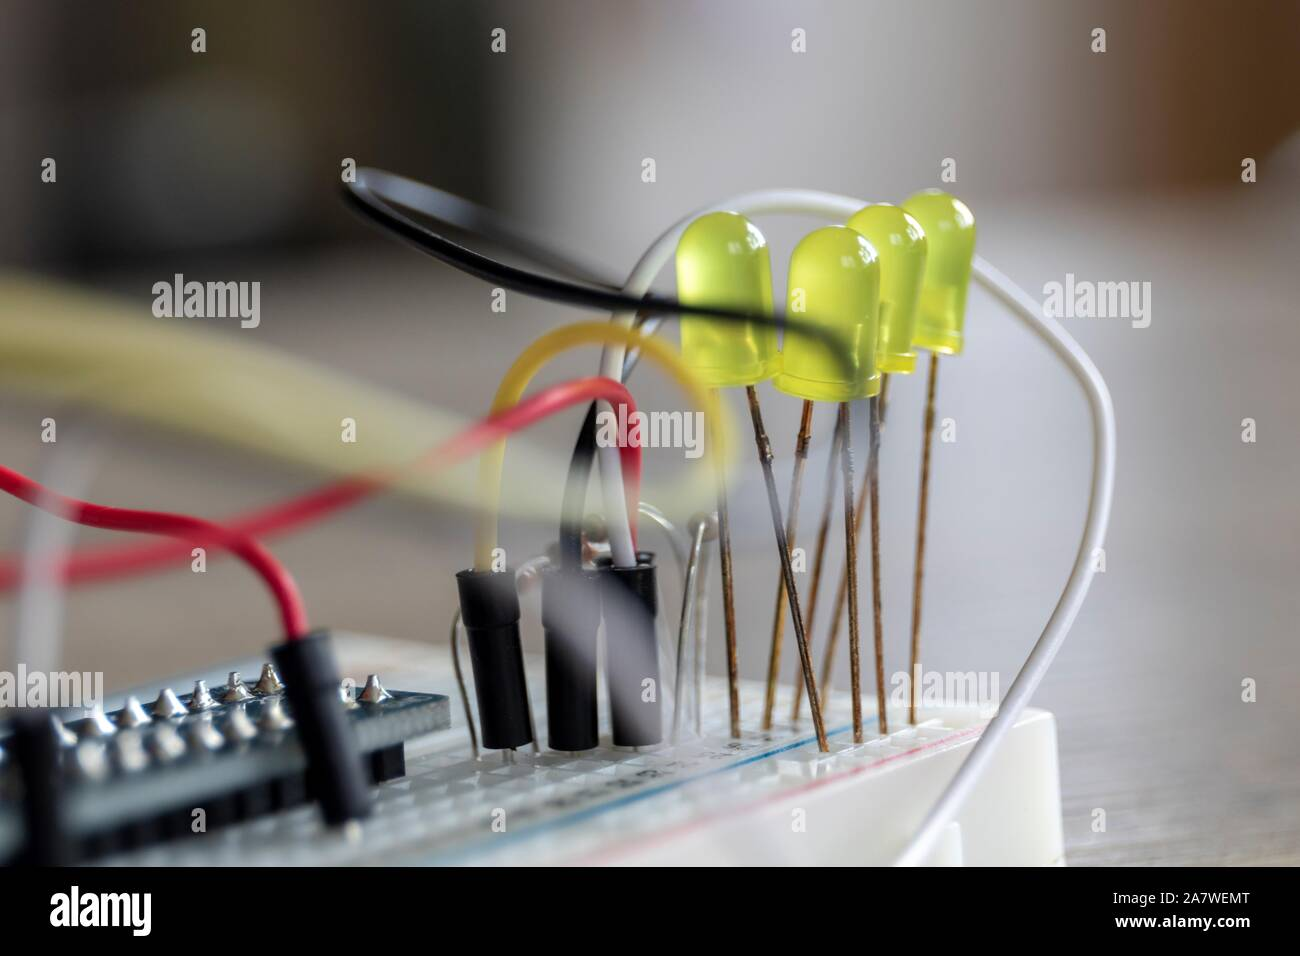 Electronics Test Connection High Resolution Stock Photography And Images Alamy